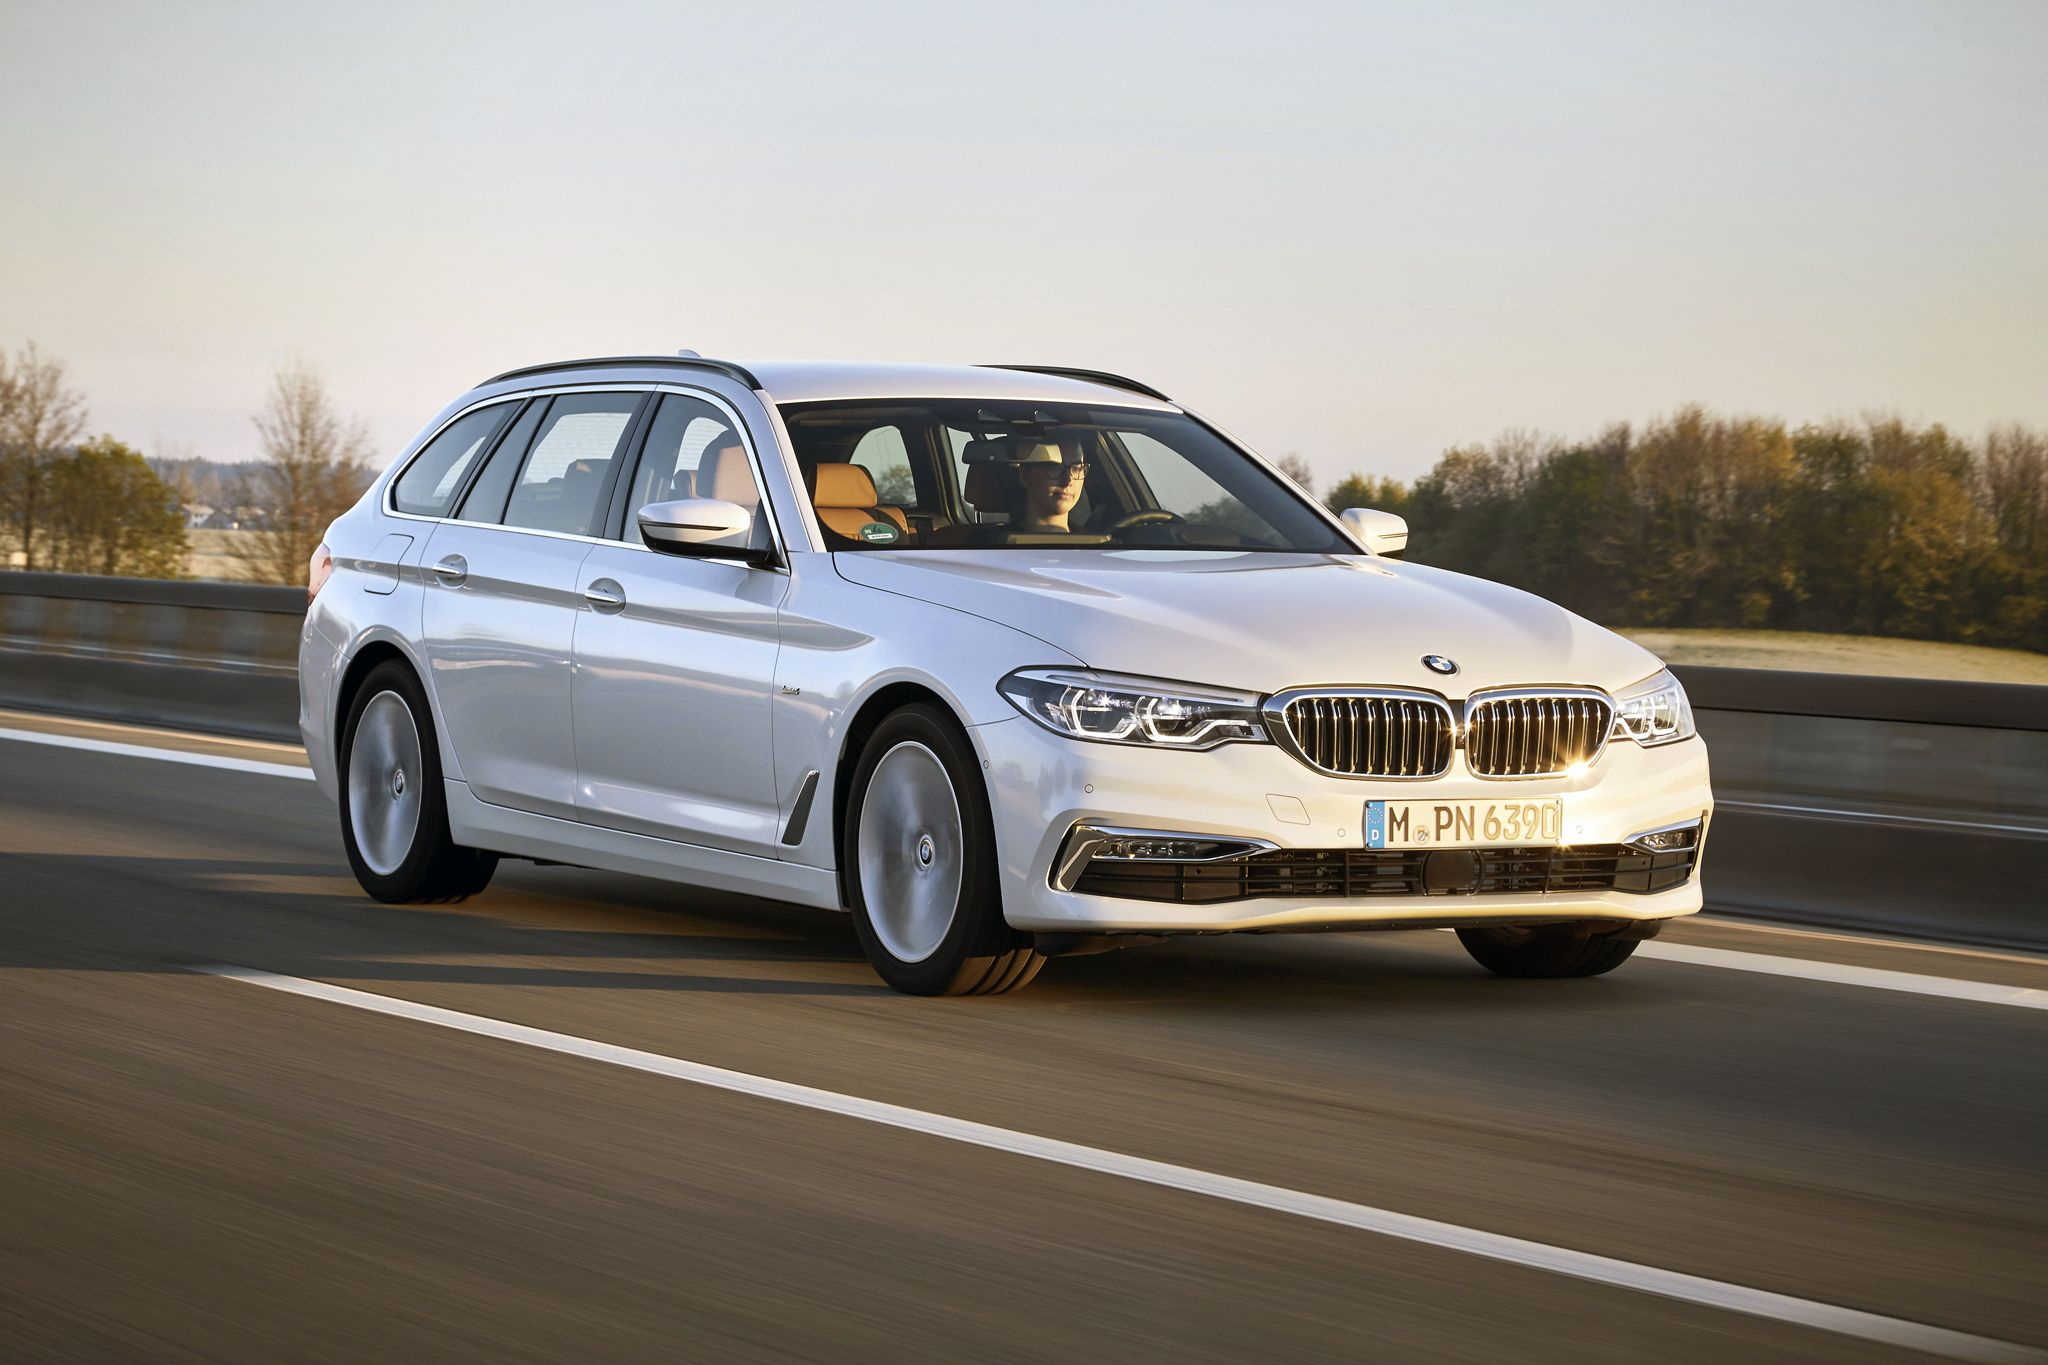 Pin By Bmw Life On Bmw Touring In 2020 Bmw Touring Bmw 5 Series Touring